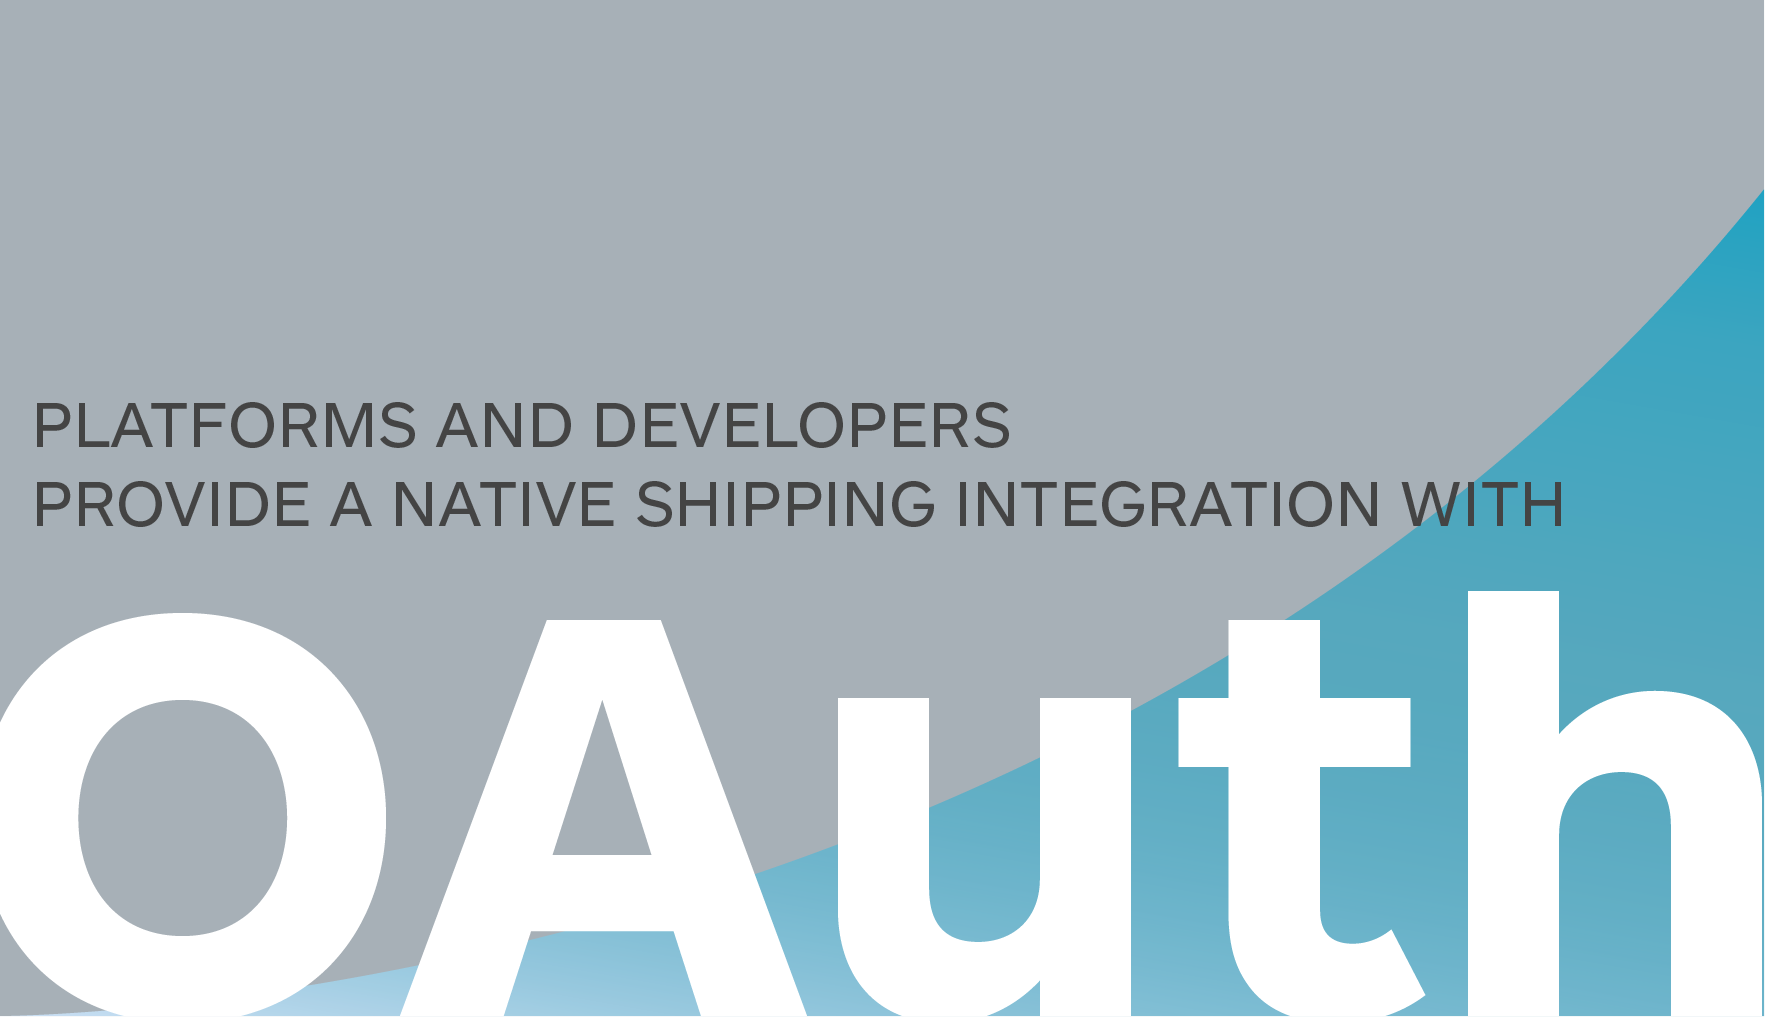 Platforms and Developers Provide a Native Shipping Integration with OAuth